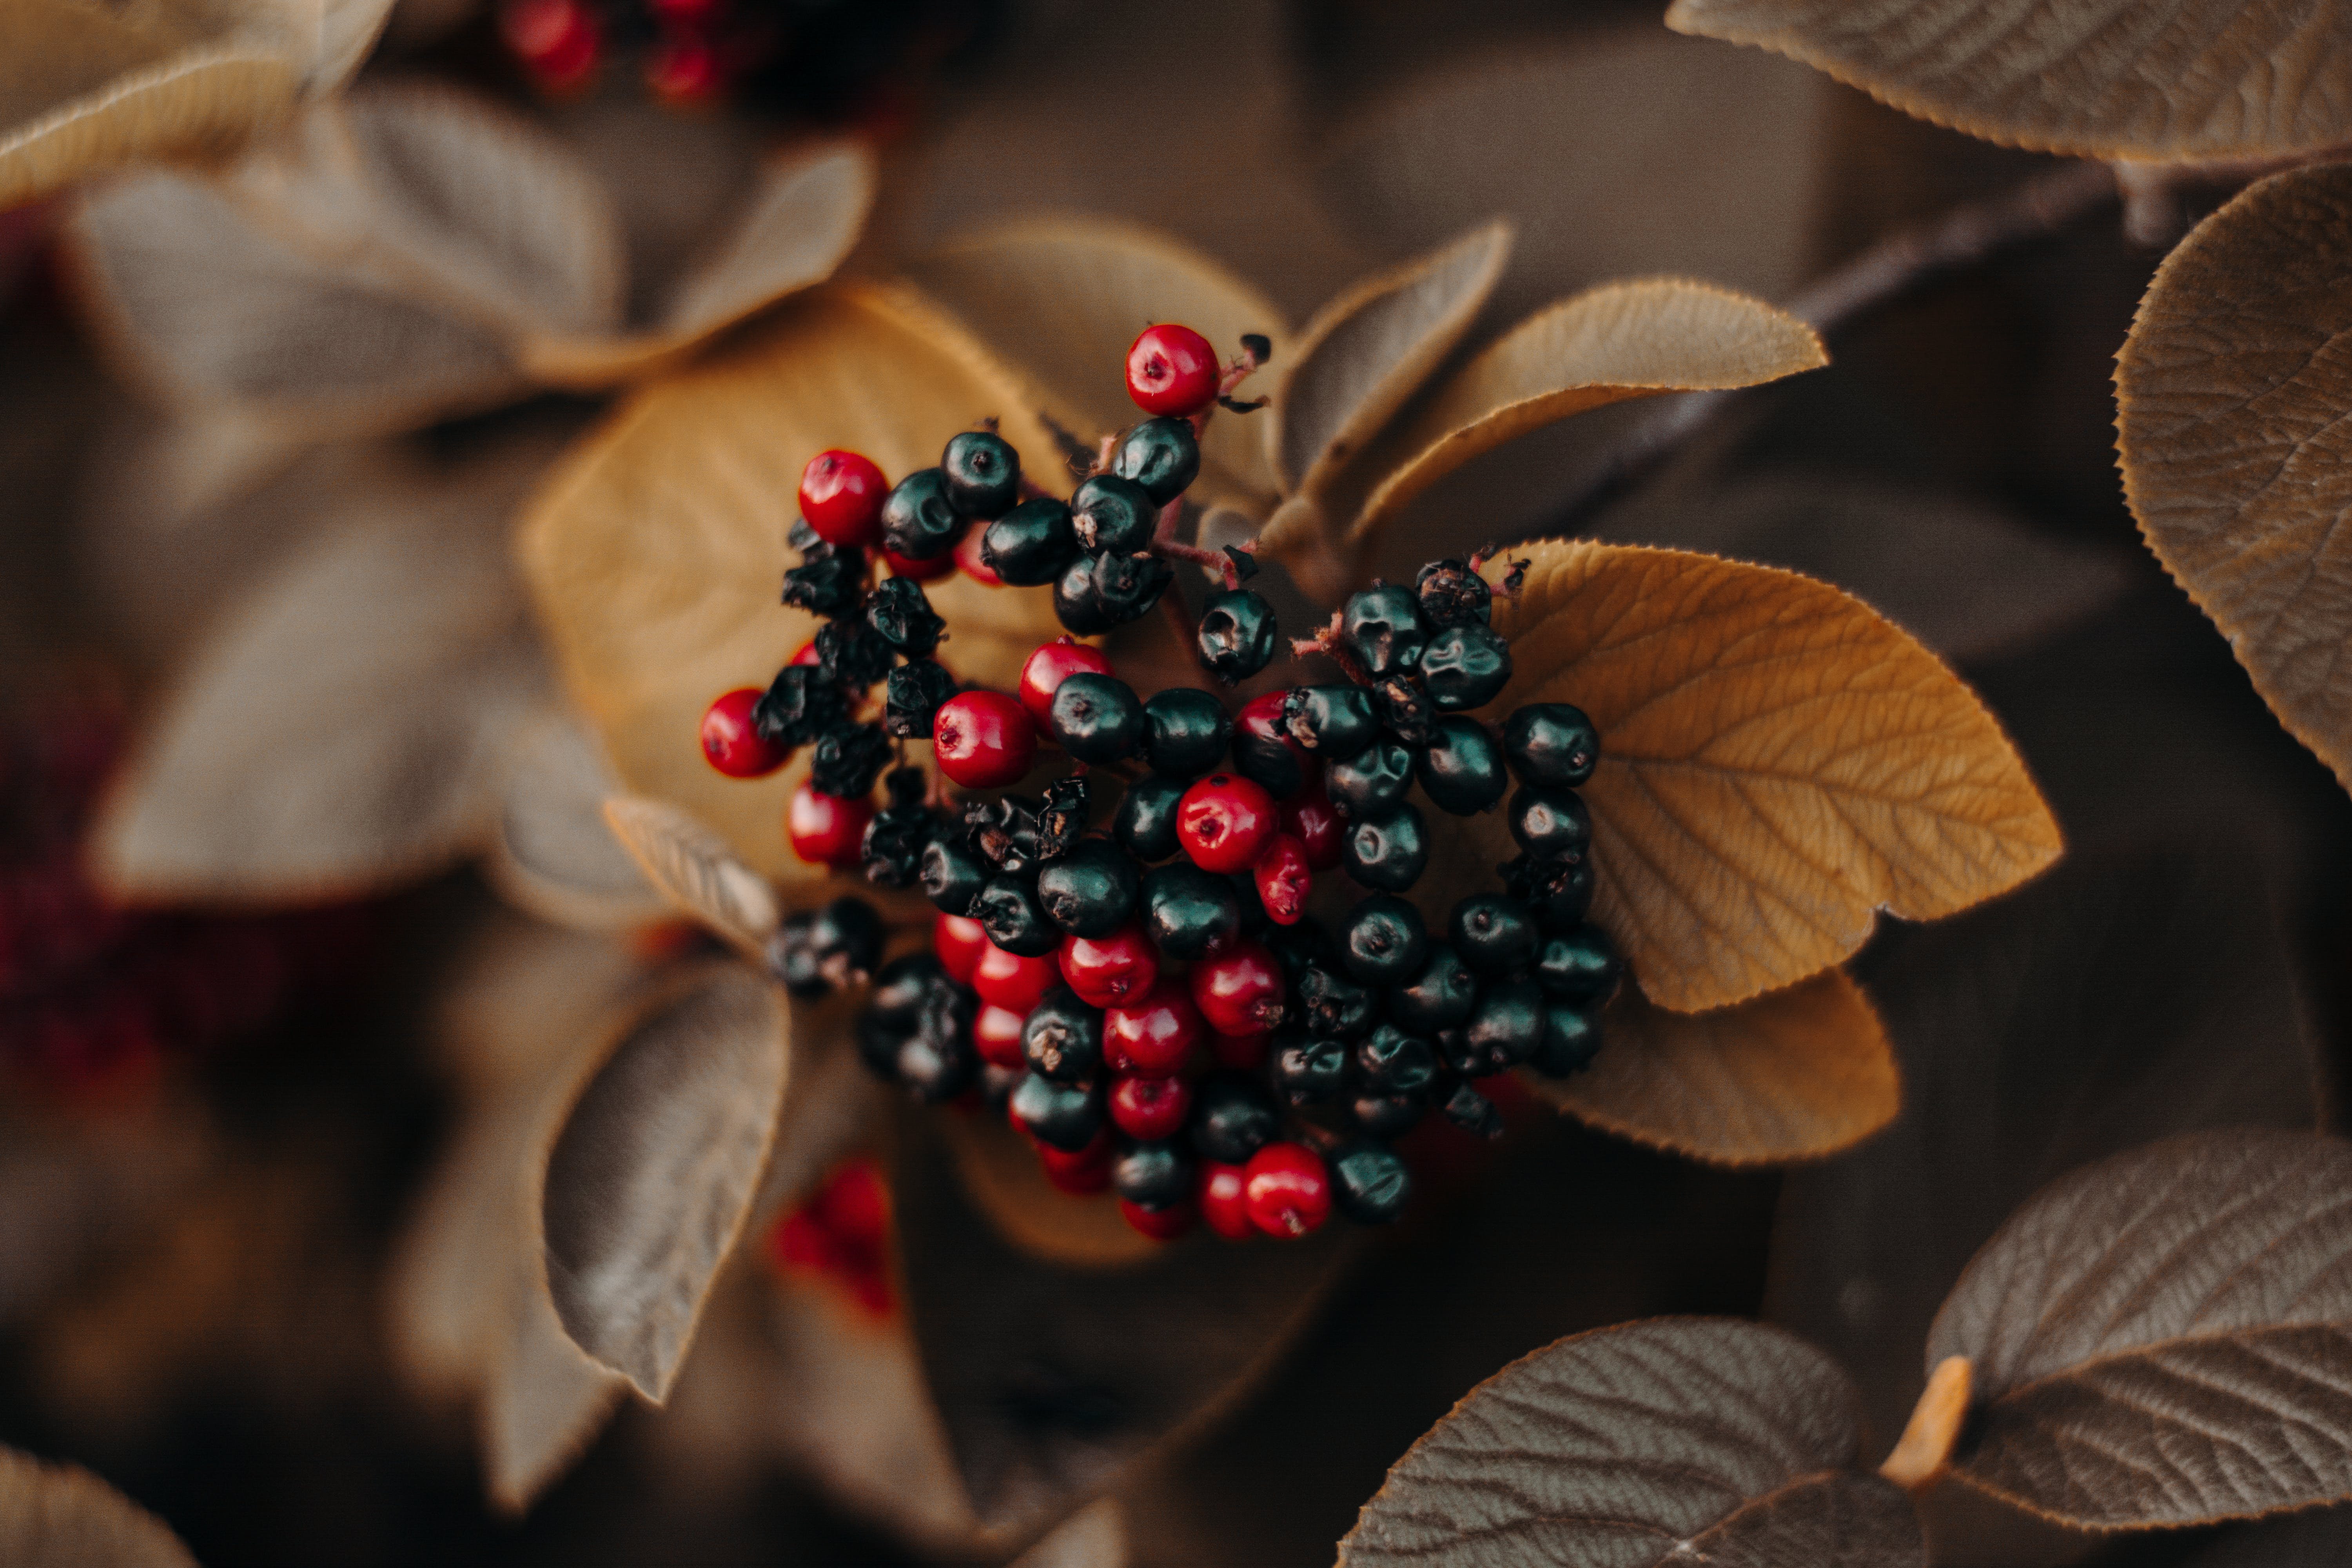 Shallow Focus Photography of Red and Black Berries